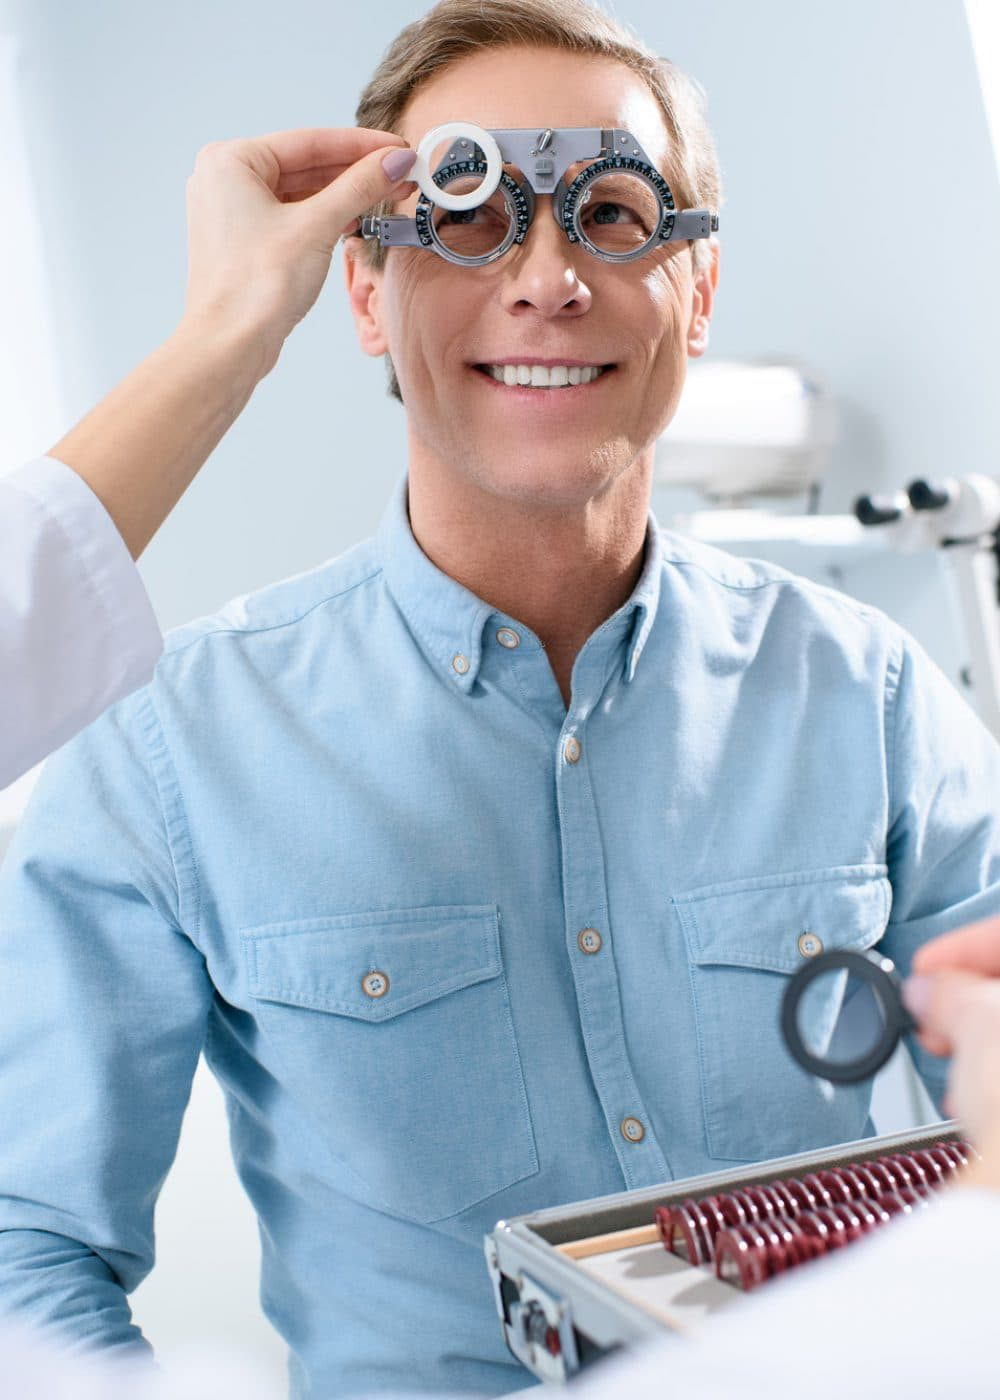 ophthalmologist-examining-middle-aged-man-eyes-with-trial-frame-and-lenses-pcpj4y7evmu461sqpjvsvb97n7s5pvlkzly8cb4rsg-pichi@2x